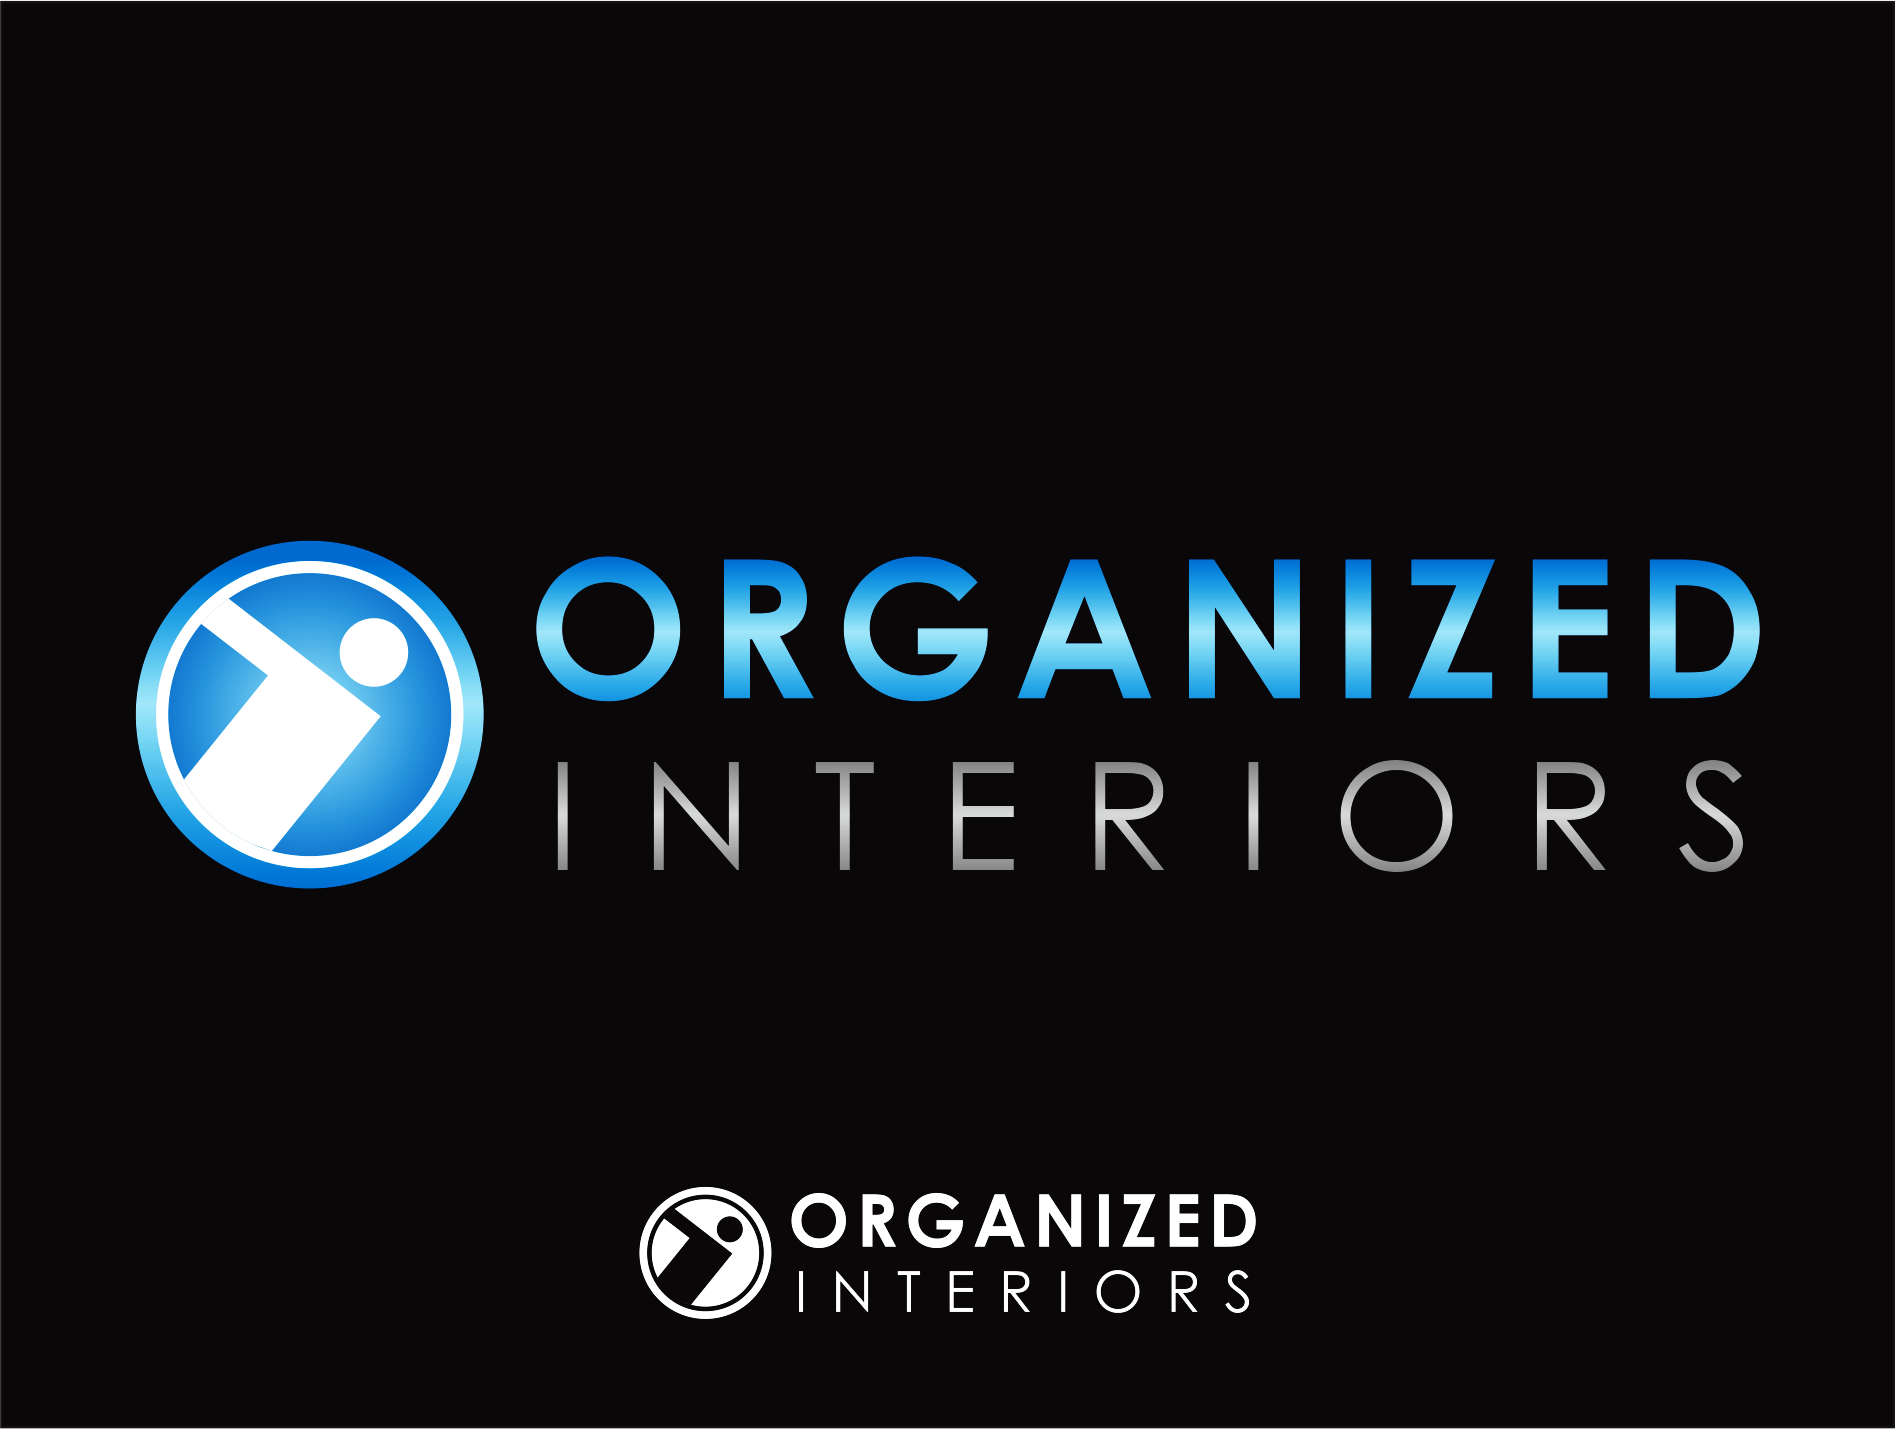 Logo Design by Armada Jamaluddin - Entry No. 48 in the Logo Design Contest Imaginative Logo Design for Organized Interiors.